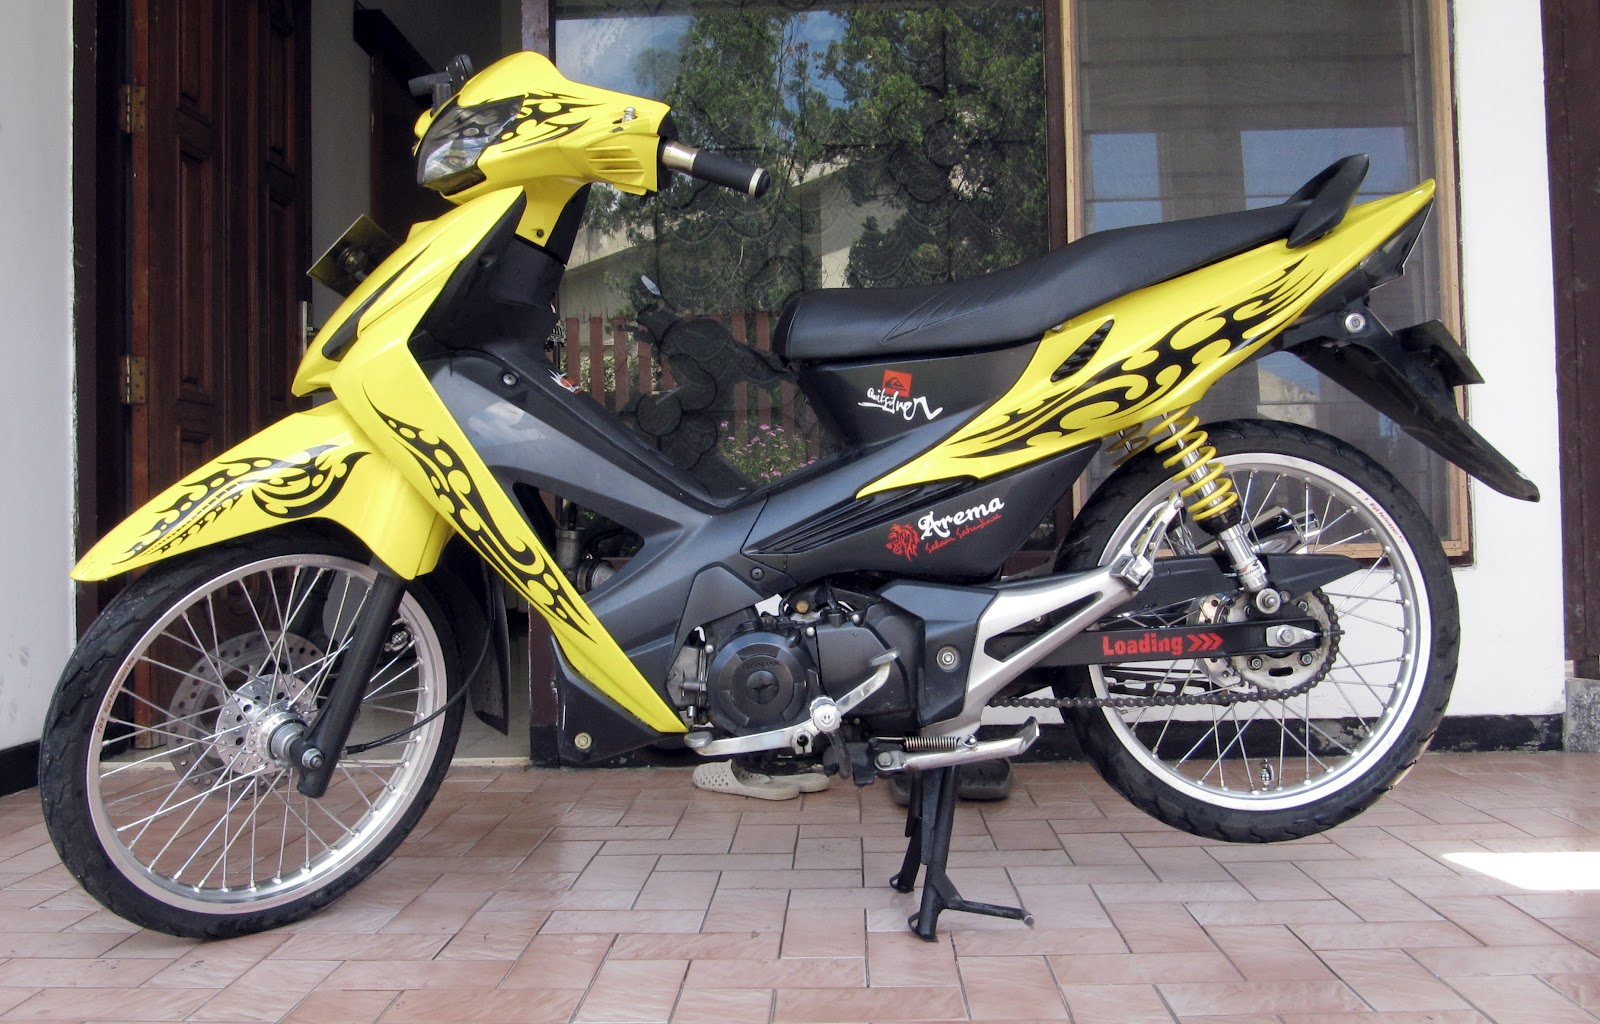 all about my lifestyle n hobbies: revo 2007 modifikasi